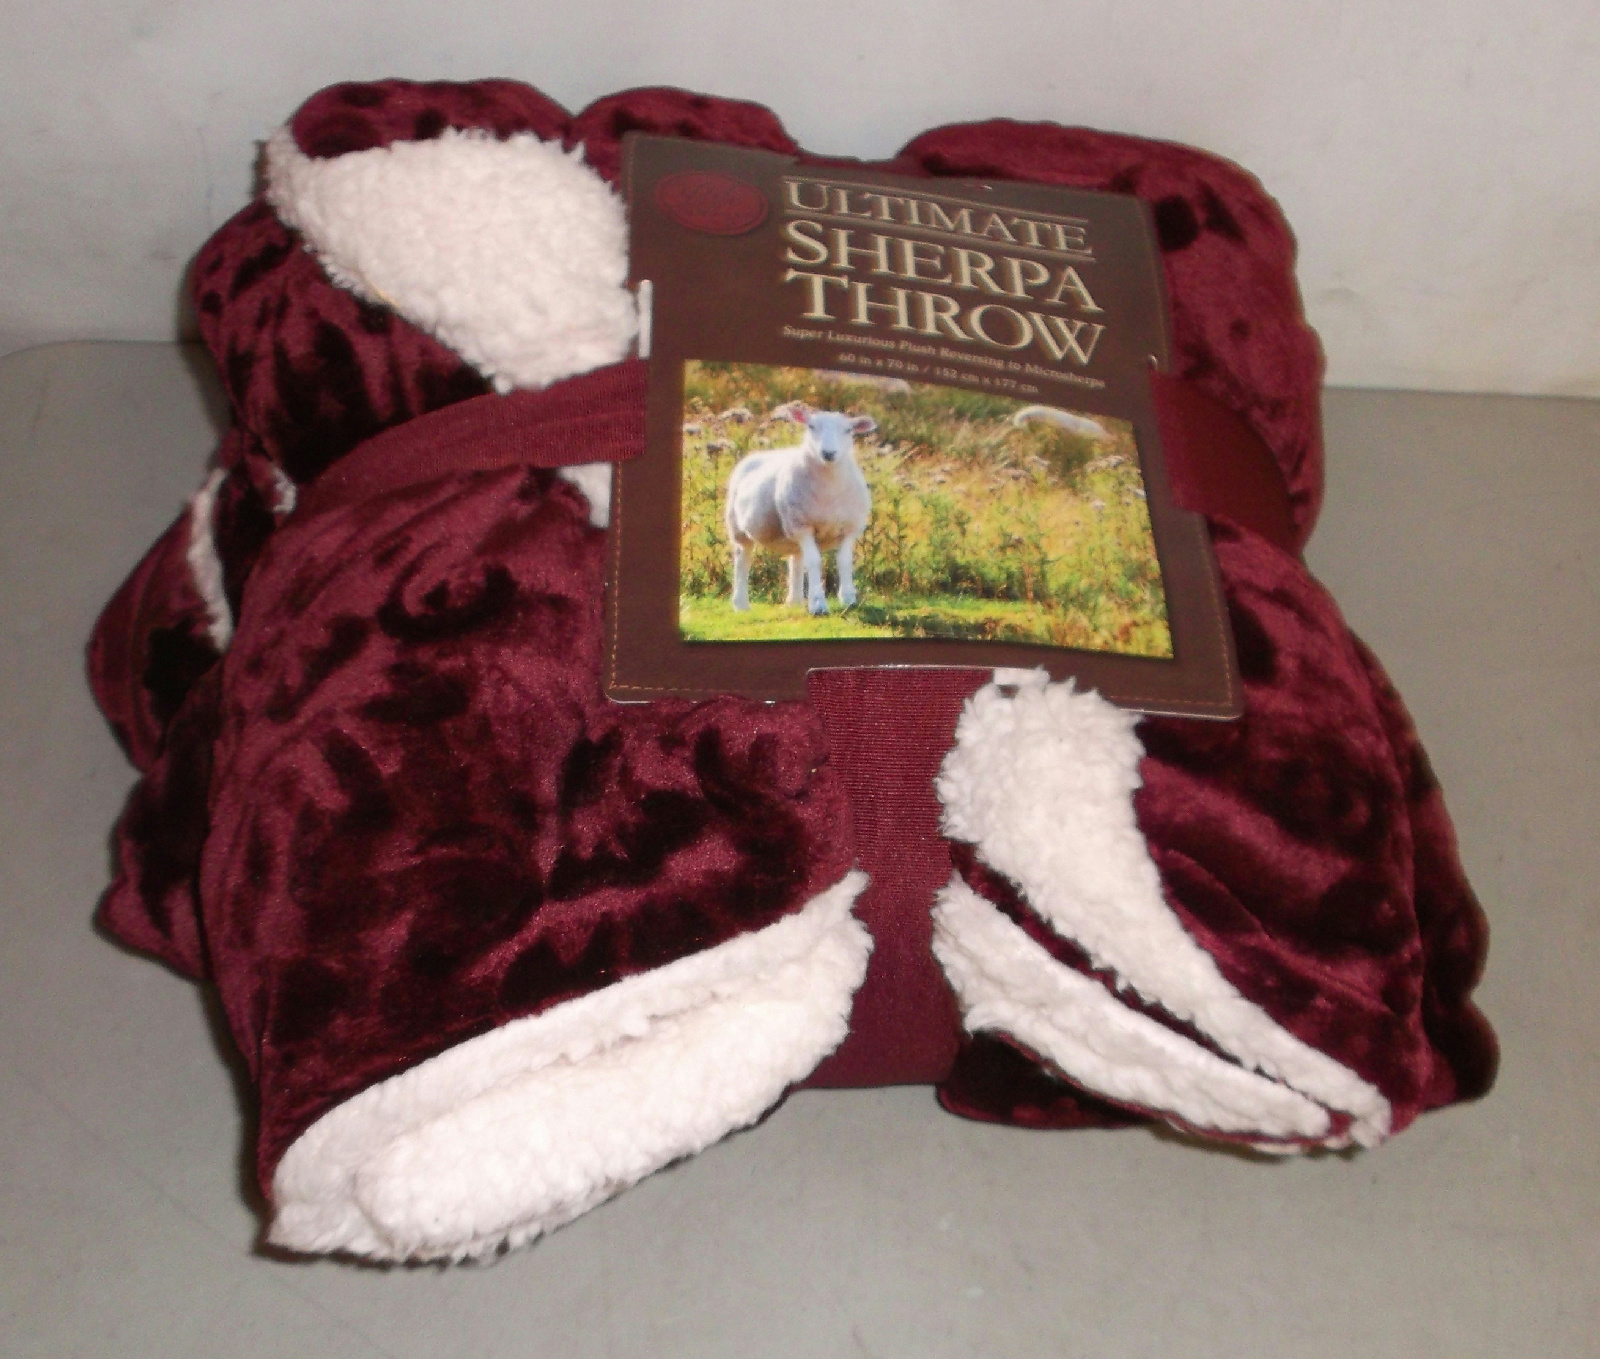 Life comfort ultimate sherpa throw burgundy 60x70 for Fenster 60x70